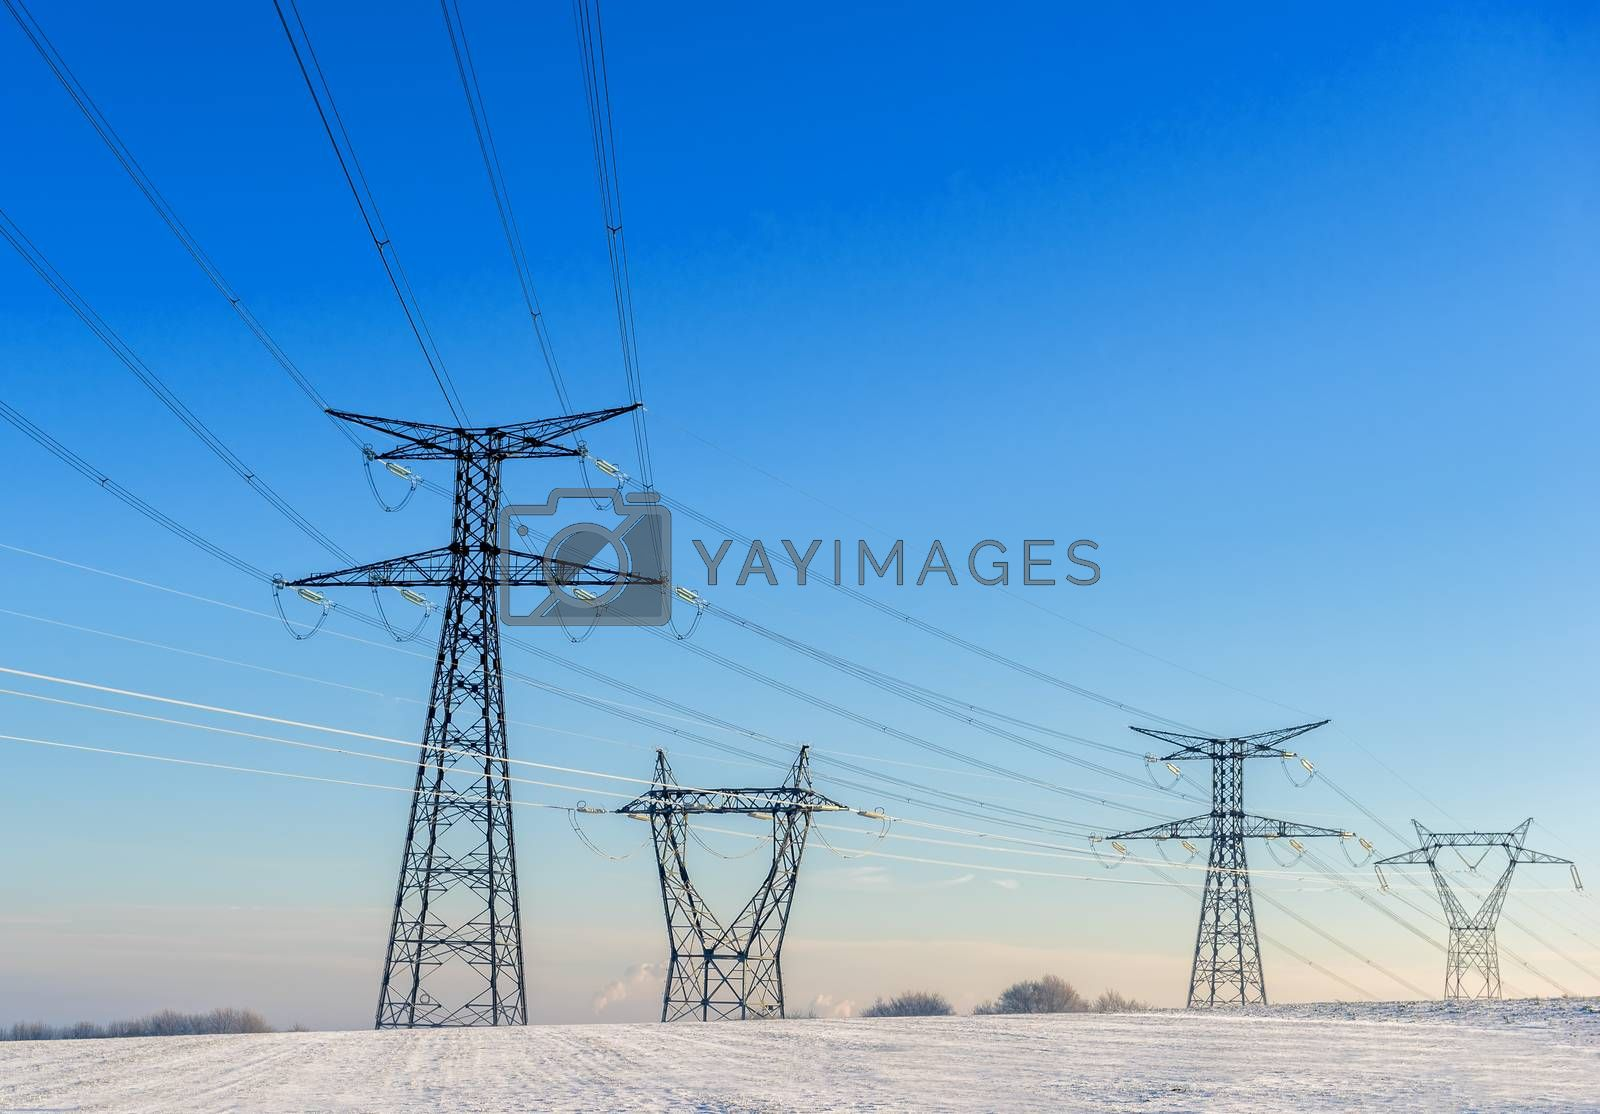 power lines in a snowy landscape on blue sky